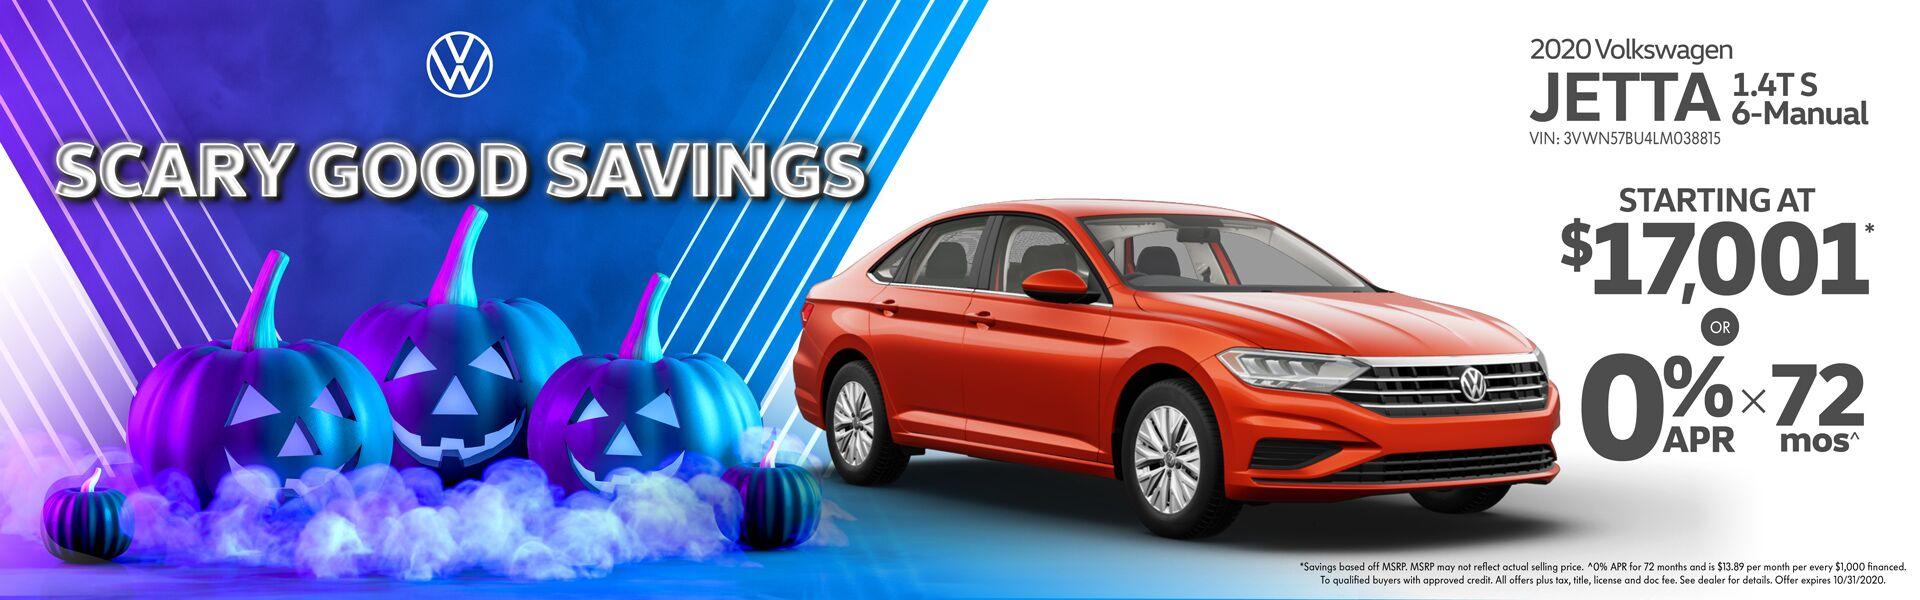 2020 Volkswagen Jetta Starting at $17,001 or get 0% Financing for 72 months!